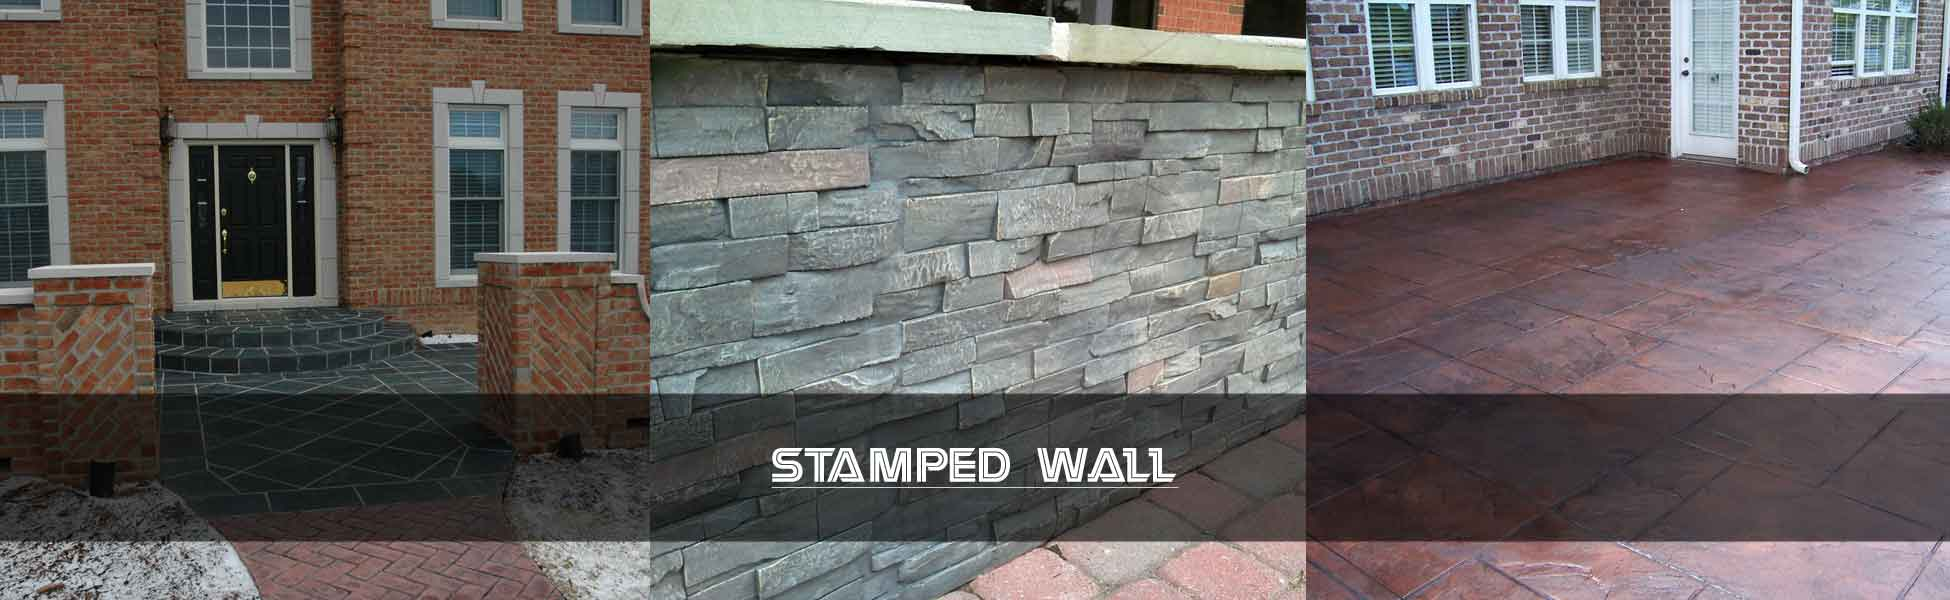 Stamped Wall